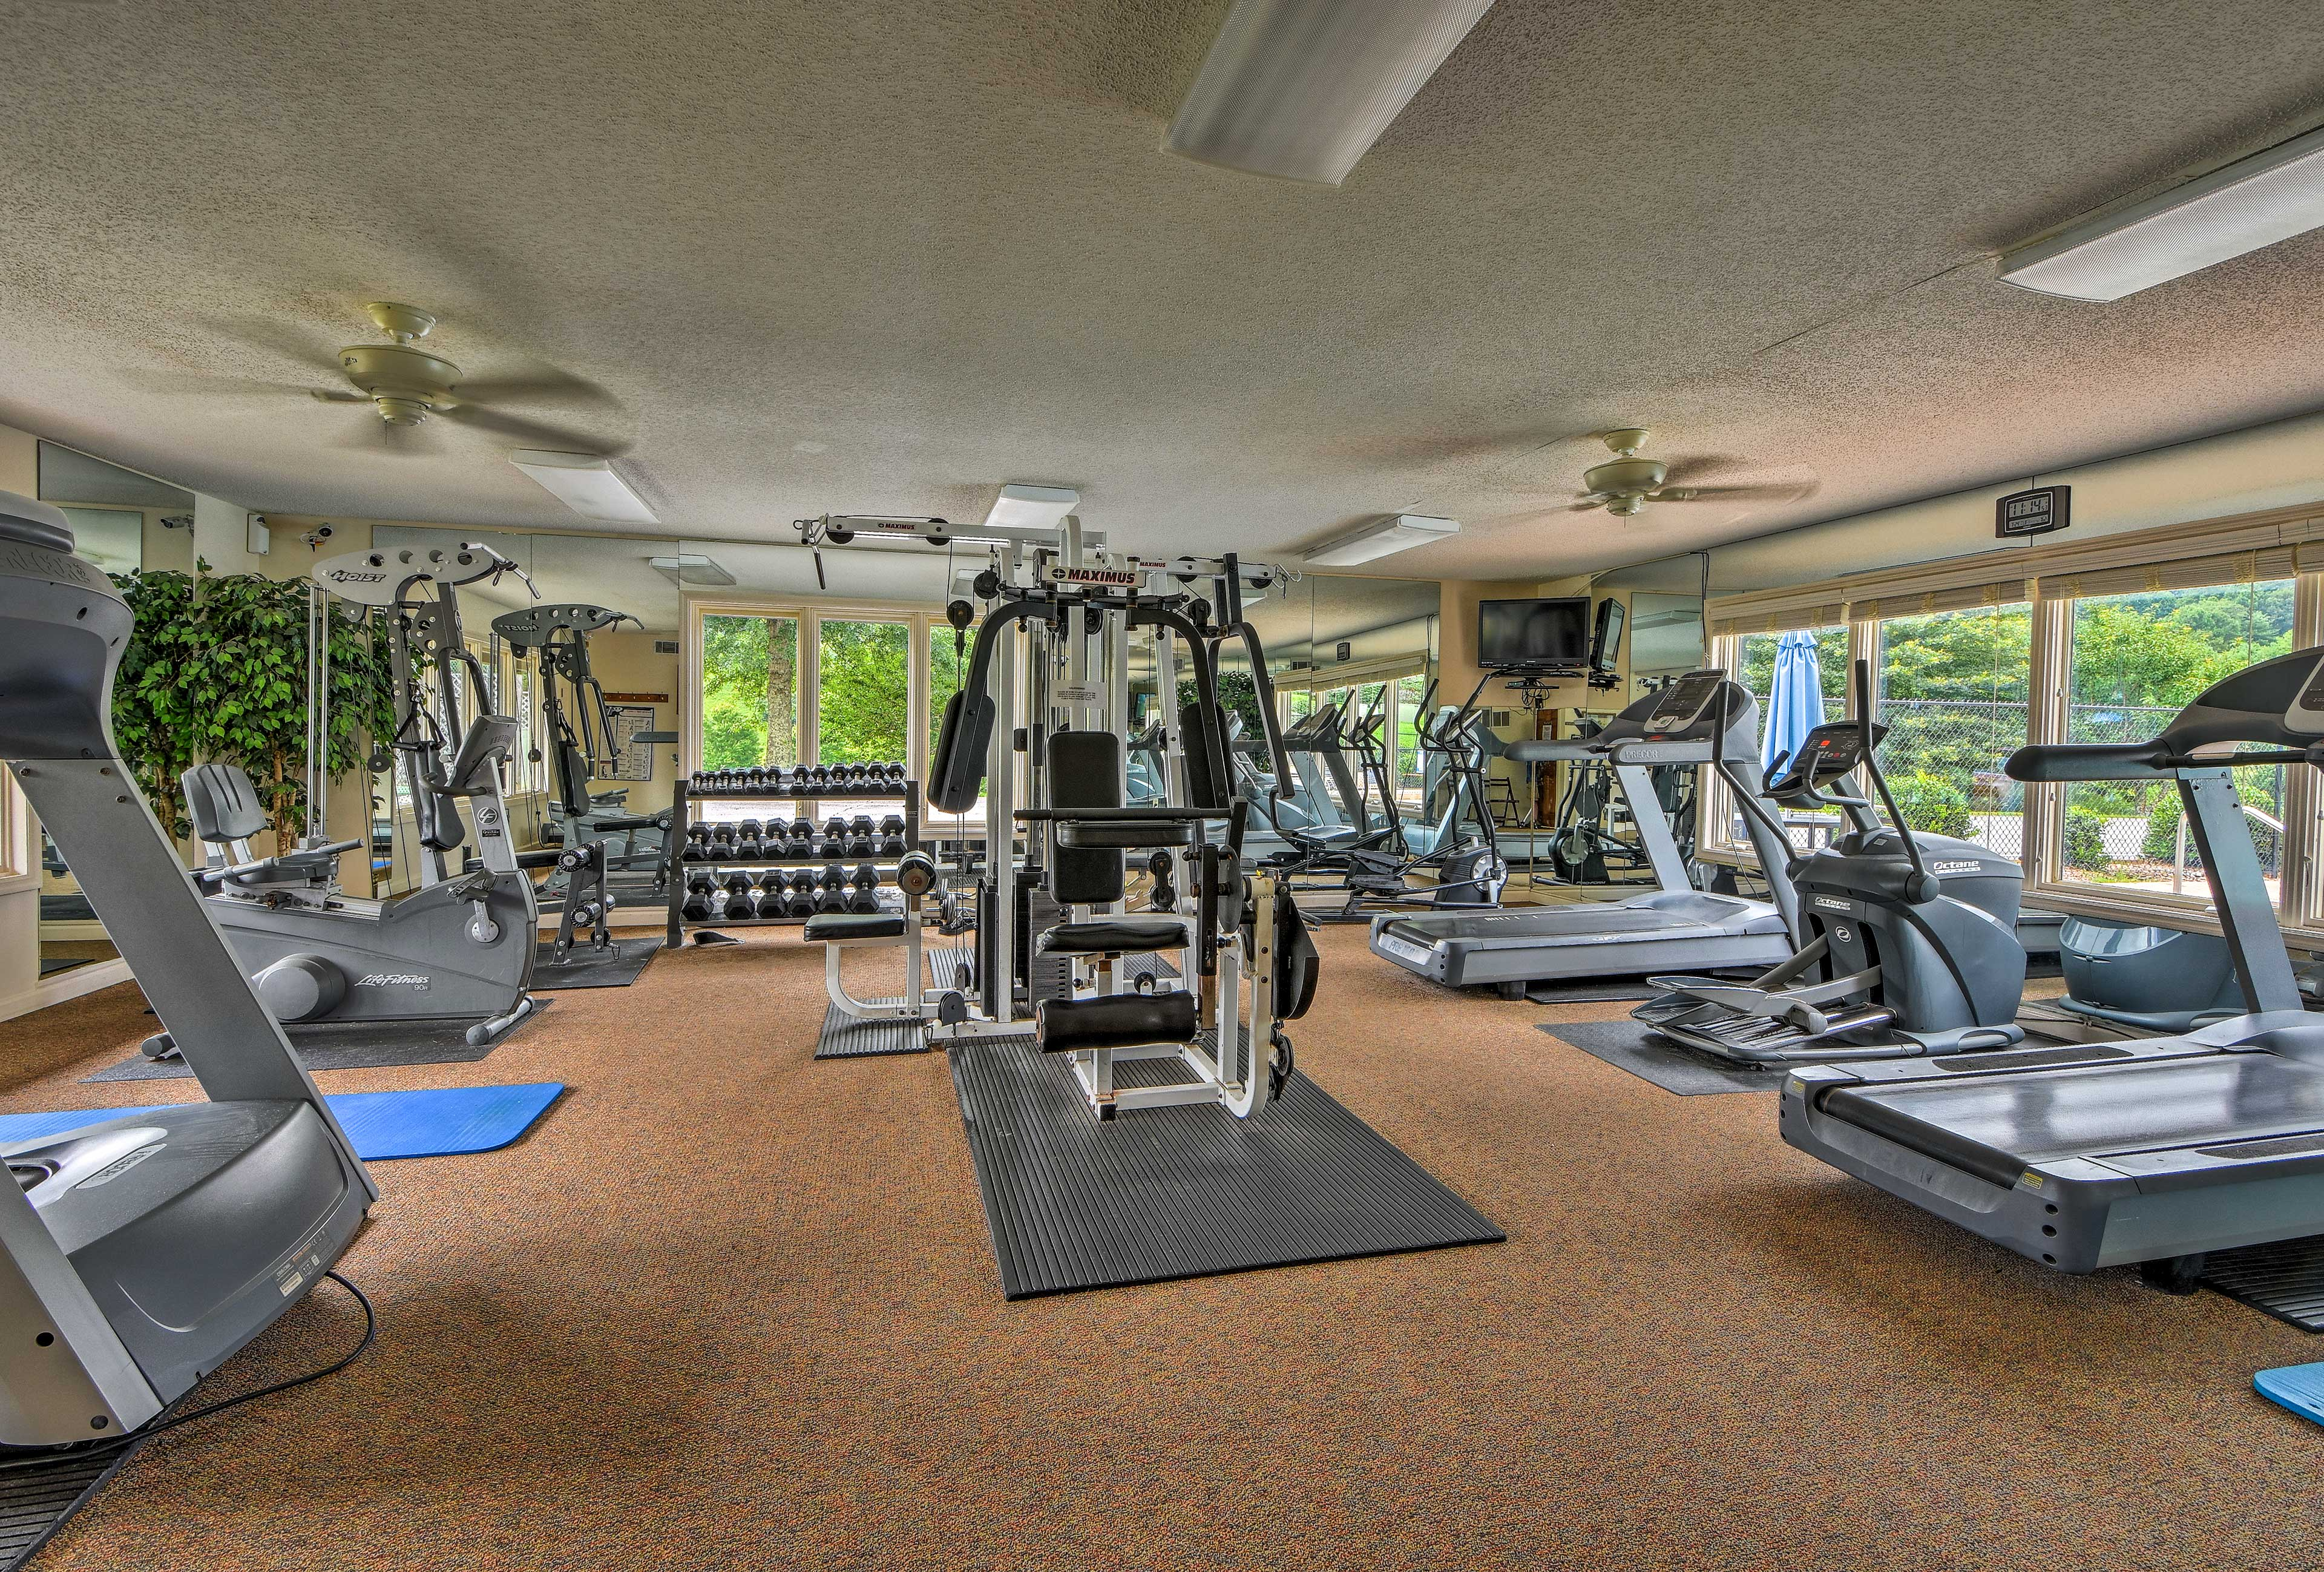 Stay on top of your workouts in the fitness center.